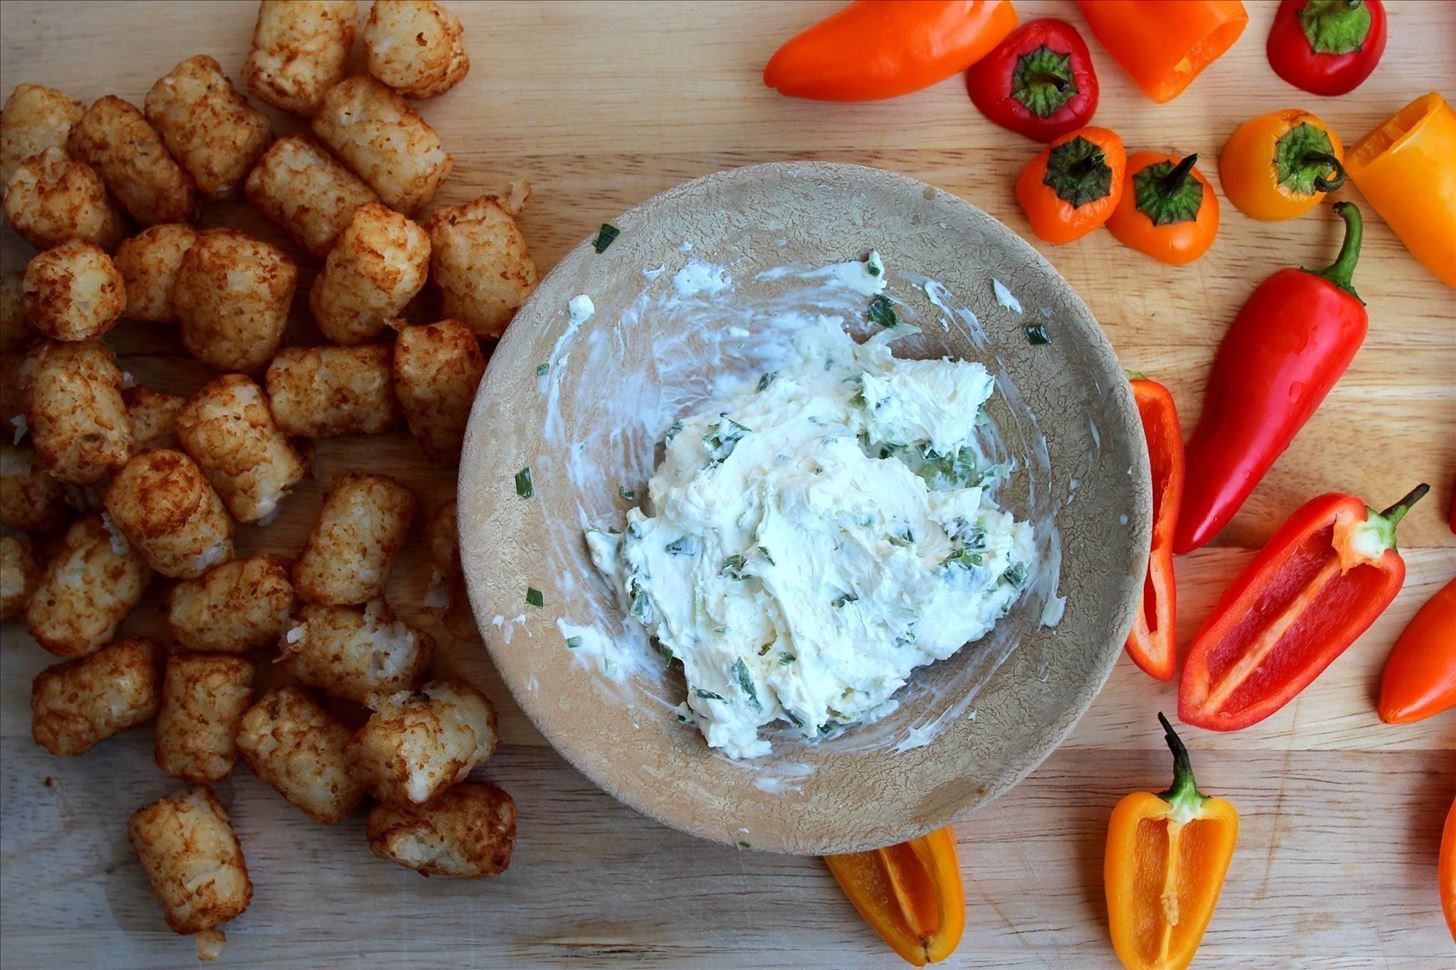 How to Make Tater Tots Even More Delicious